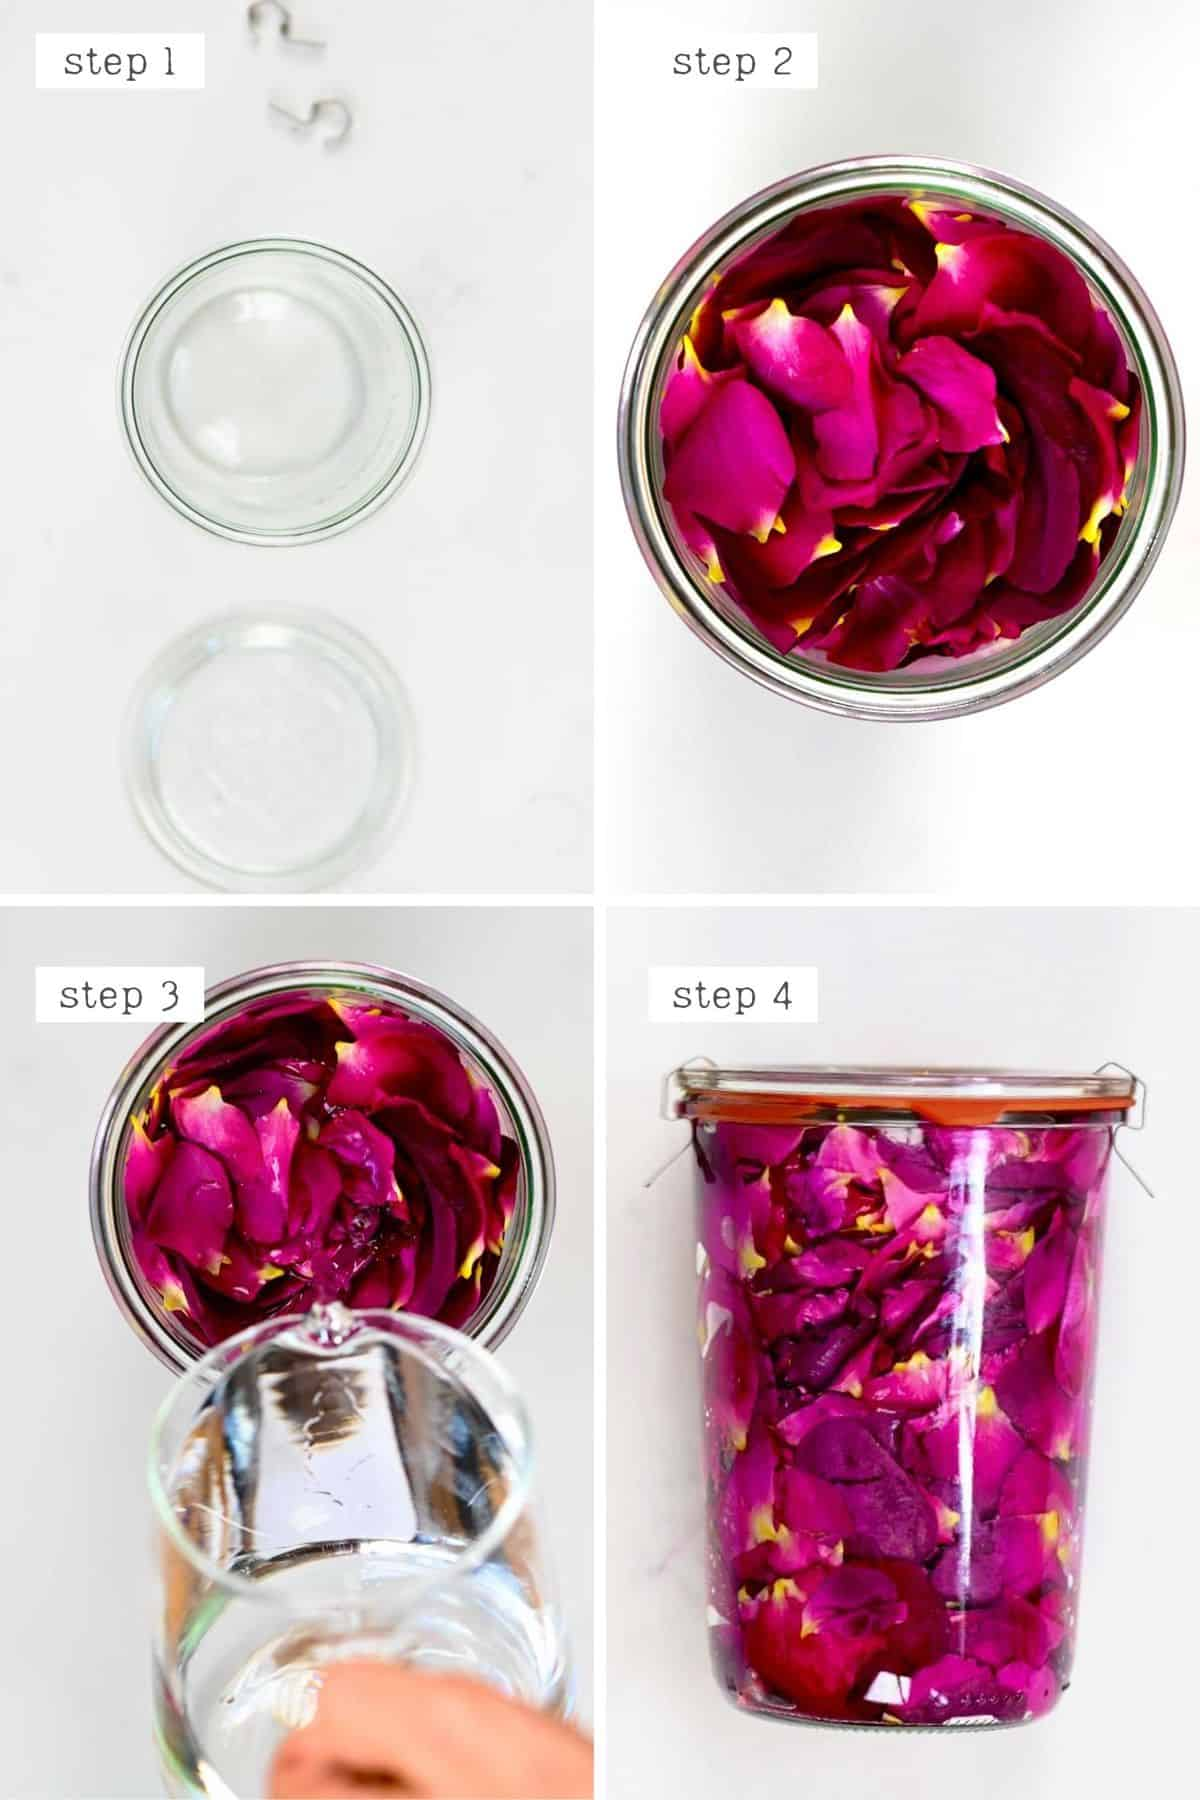 Steps for making rose extract